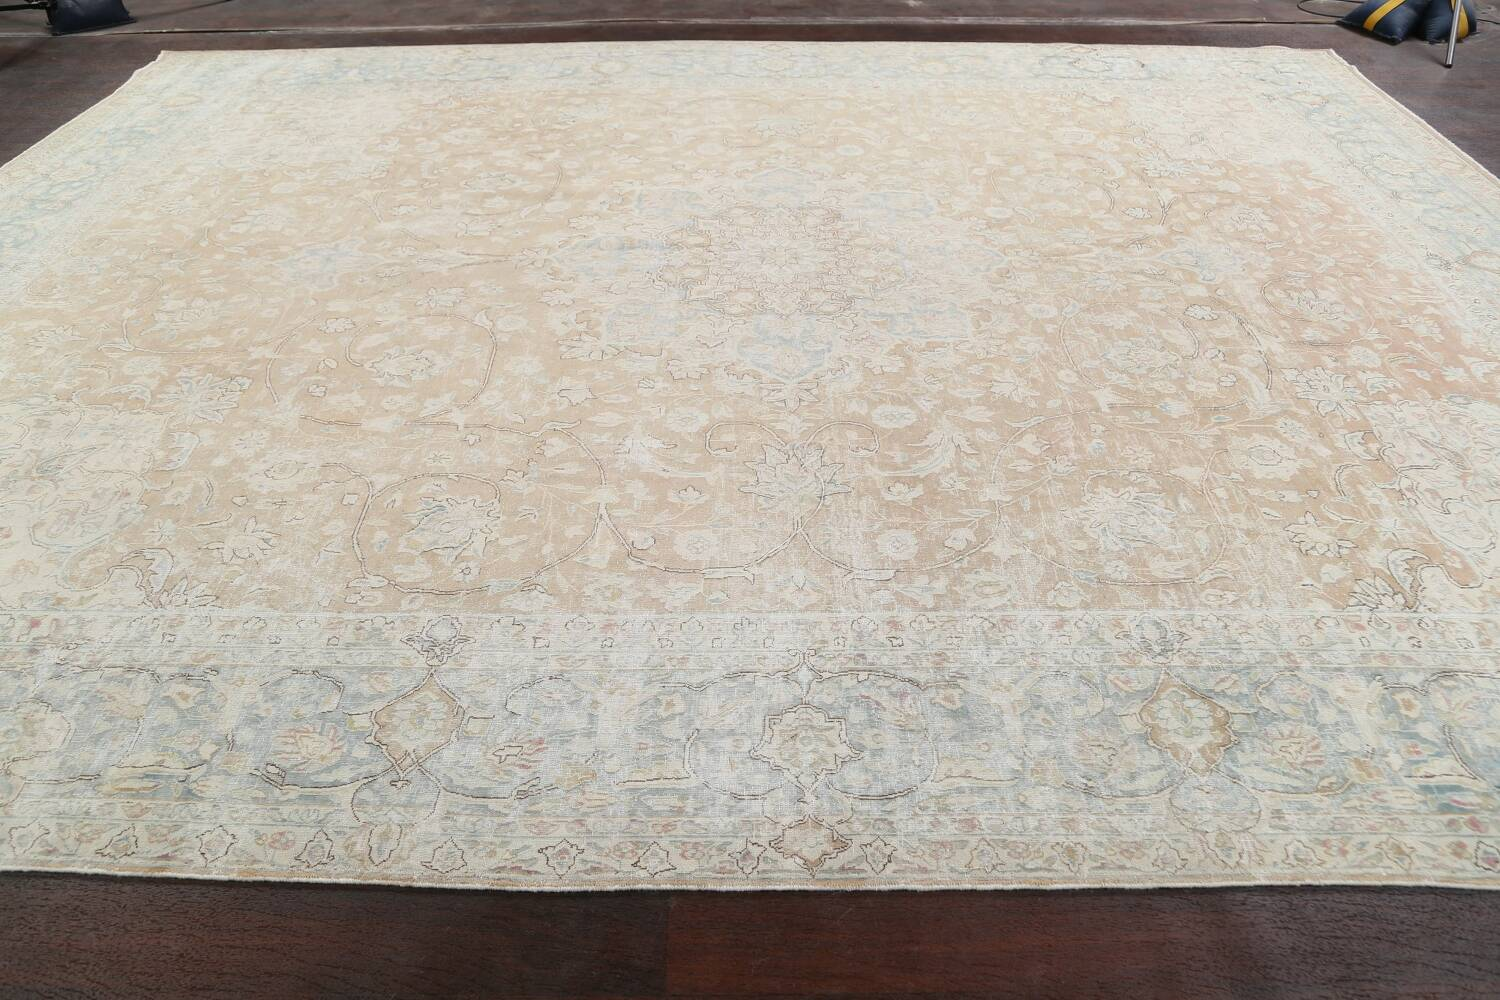 Muted Floral Kerman Persian Area Rug 10x13 image 14